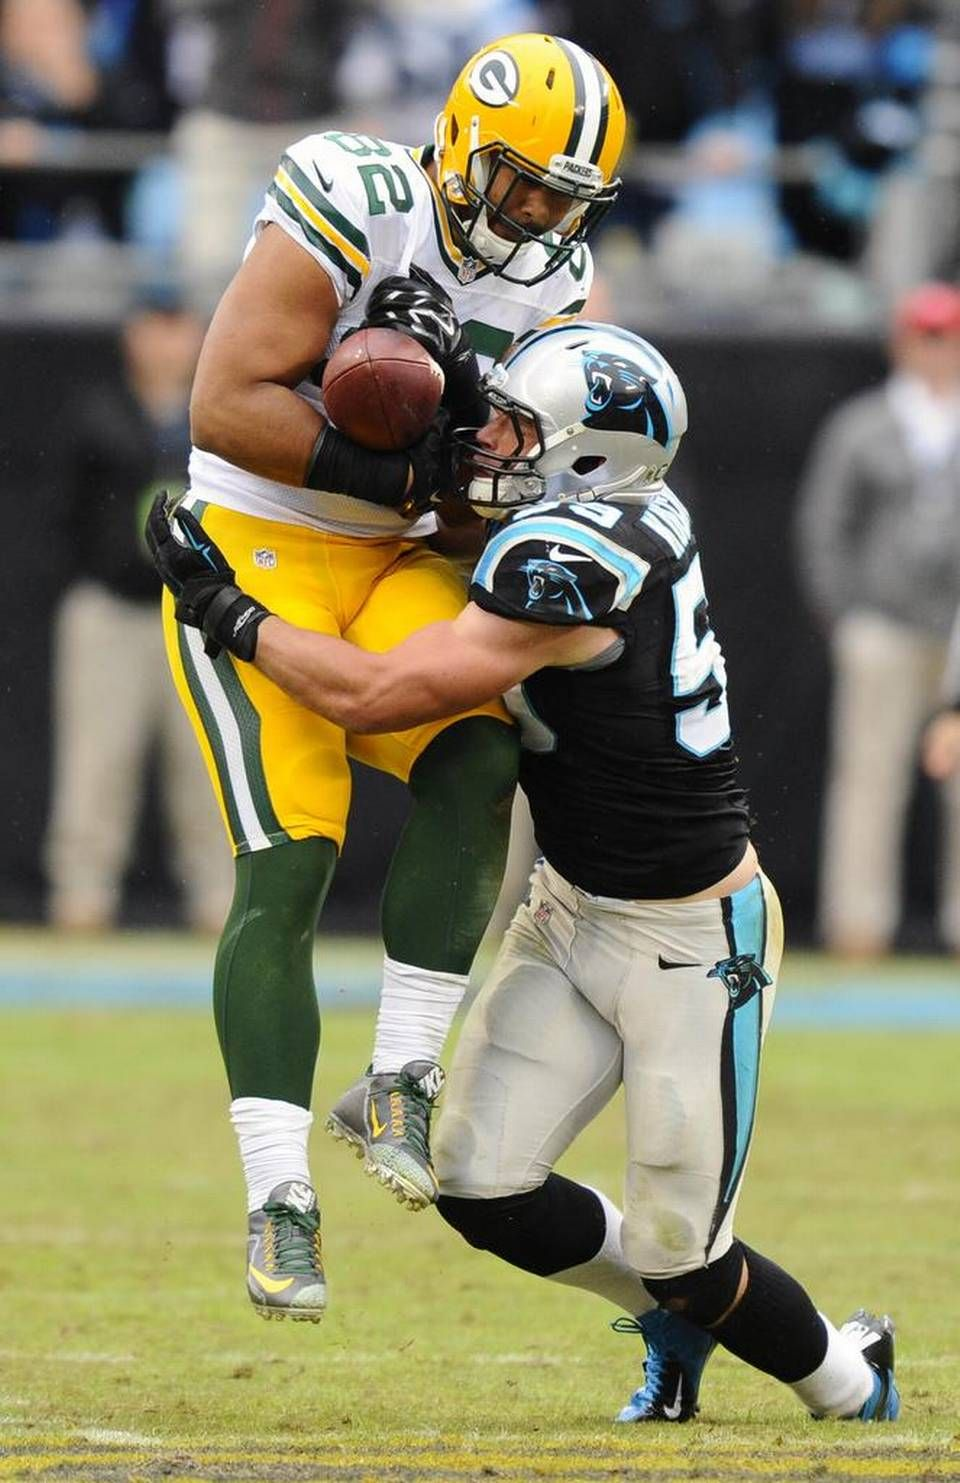 Carolina Panthers Luke Kuechly 59 Disrupts A Pass Intended For Green Bay Packers Richard Rodgers 82 During The Third Quarter At Bank Of America Stadium On